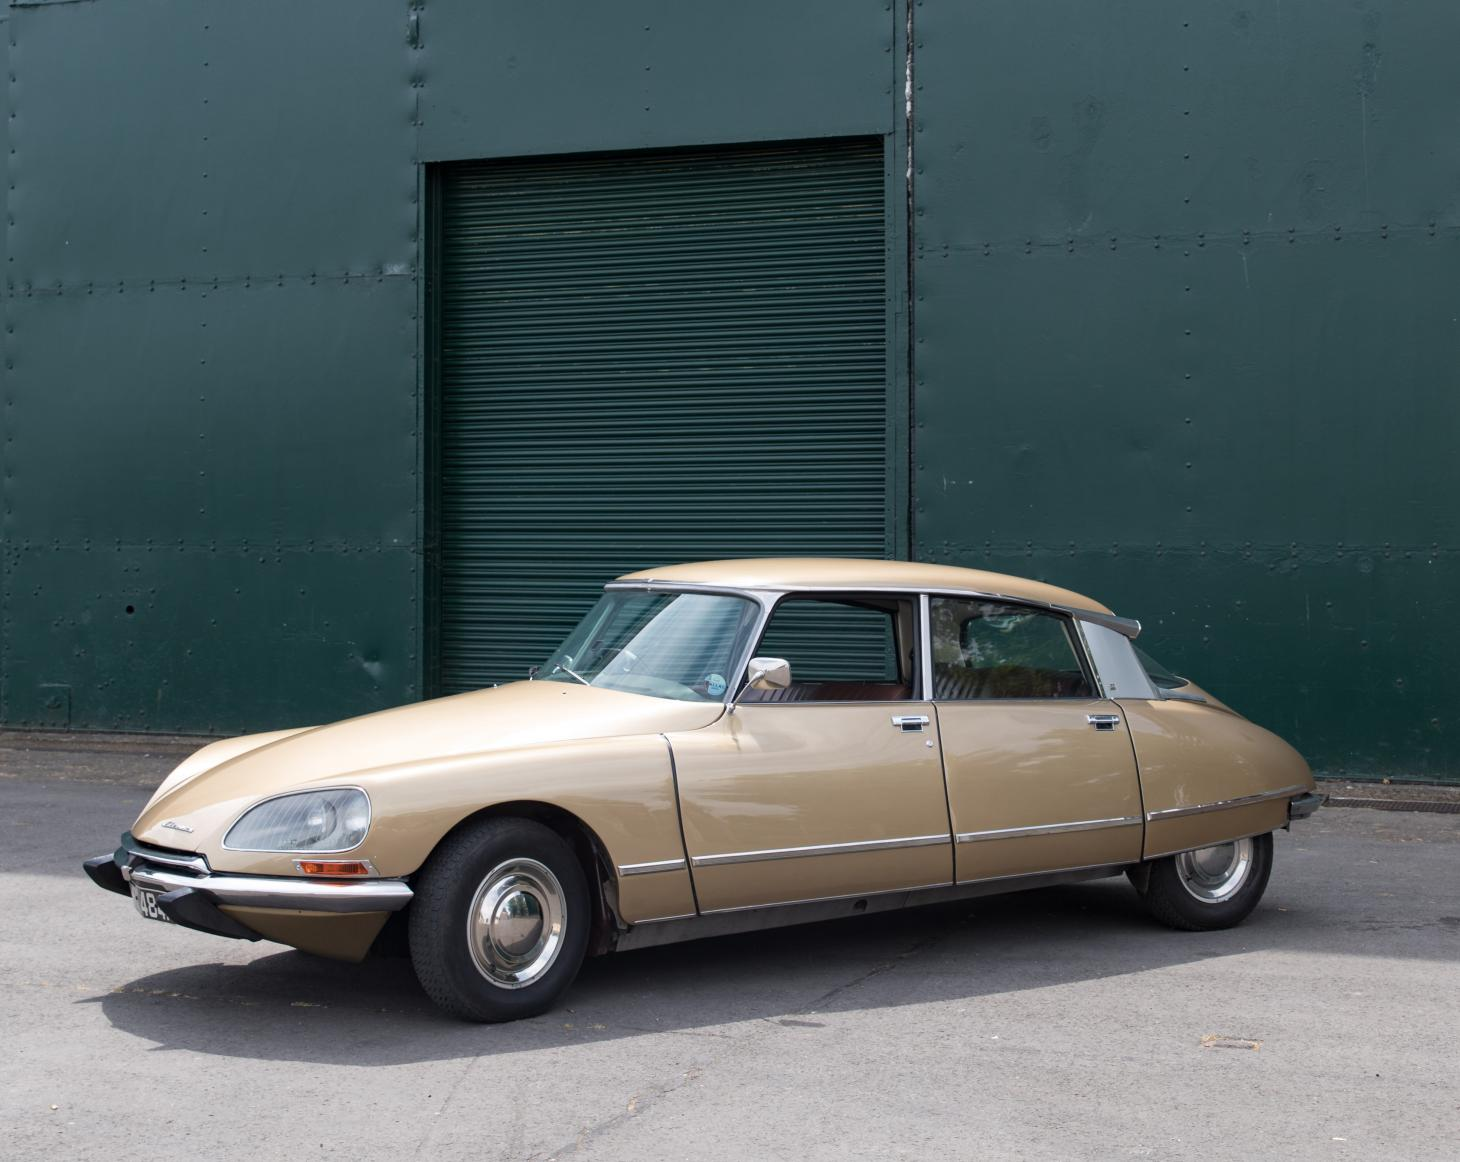 Electrogenic's newest vehicle, the Citroen DS